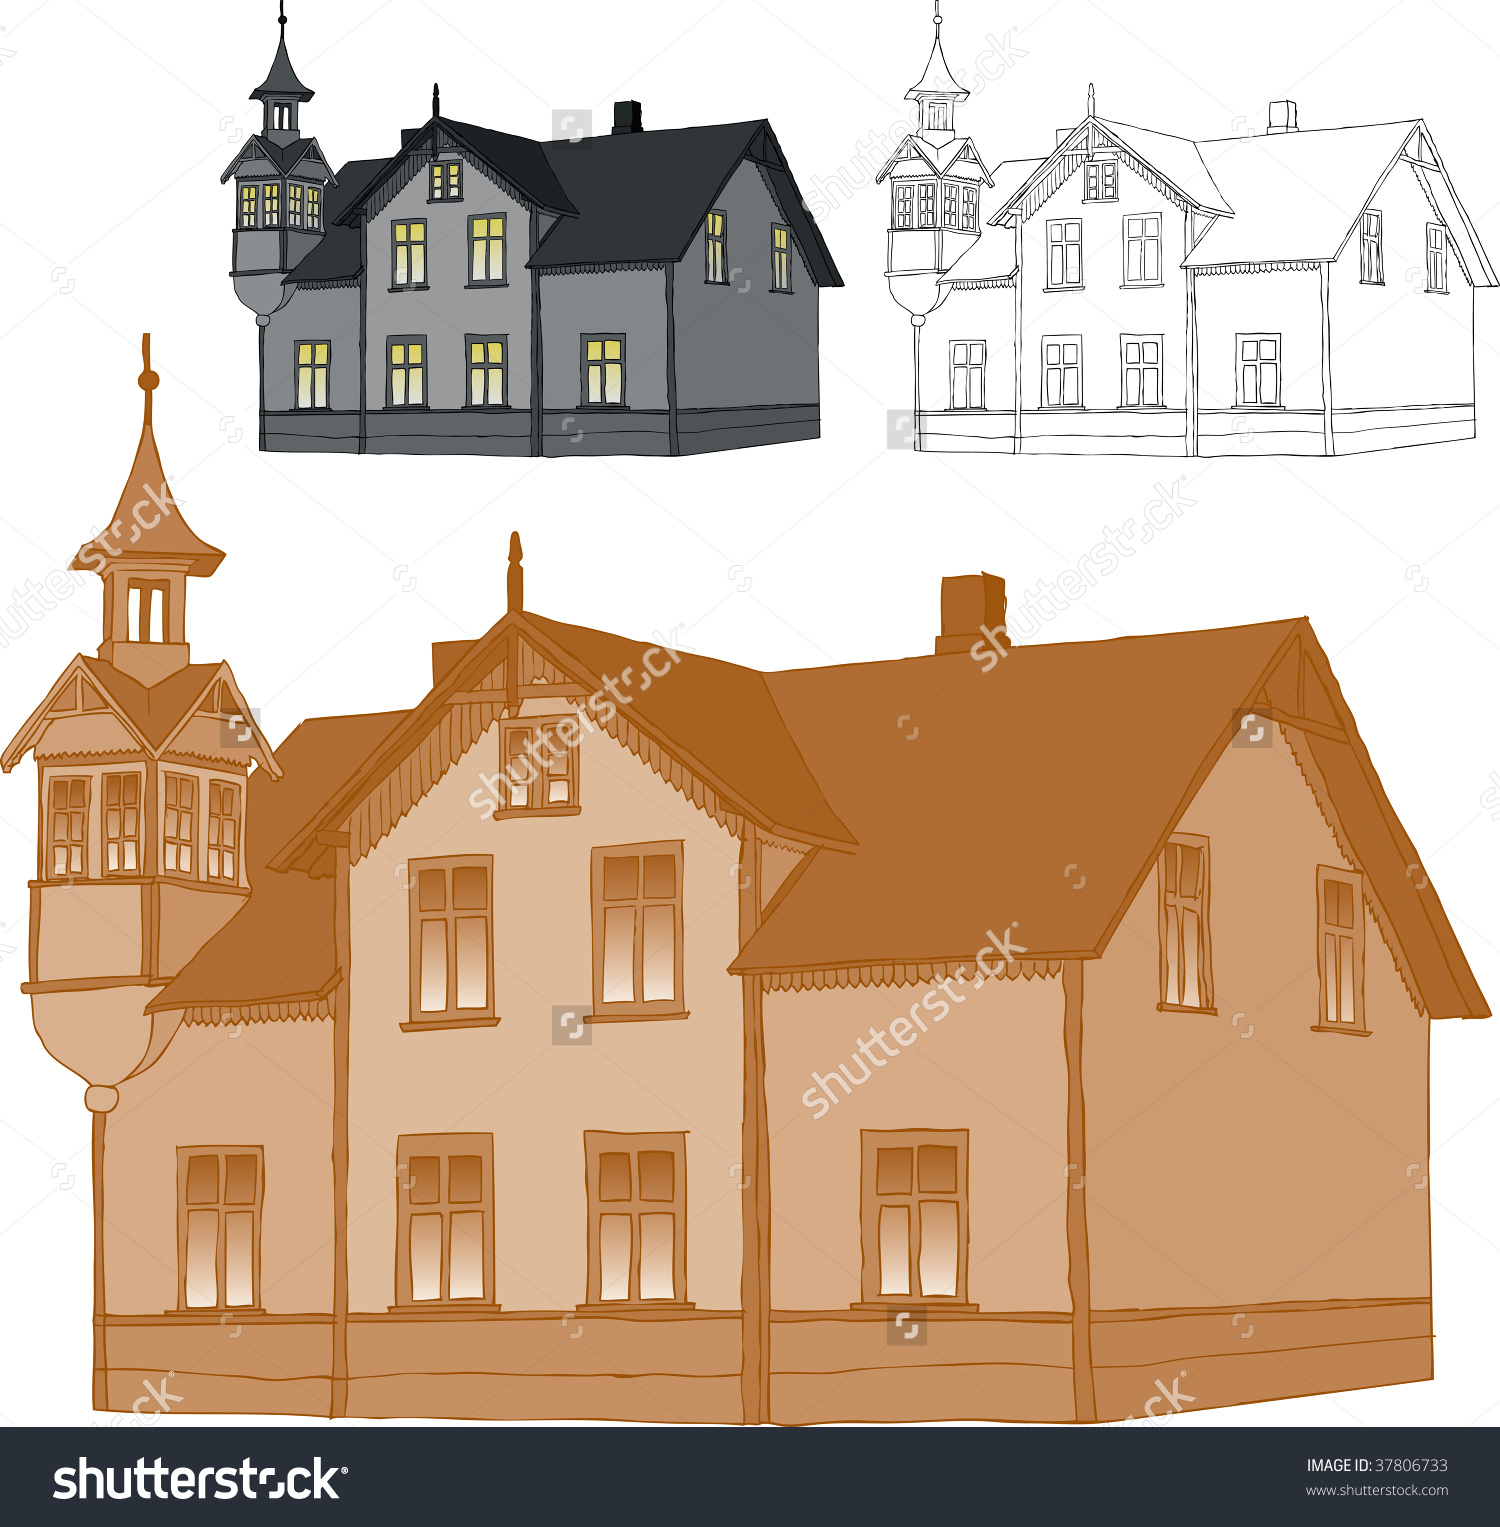 Old Romantic Family House Trace Freehand Stock Vector 37806733.